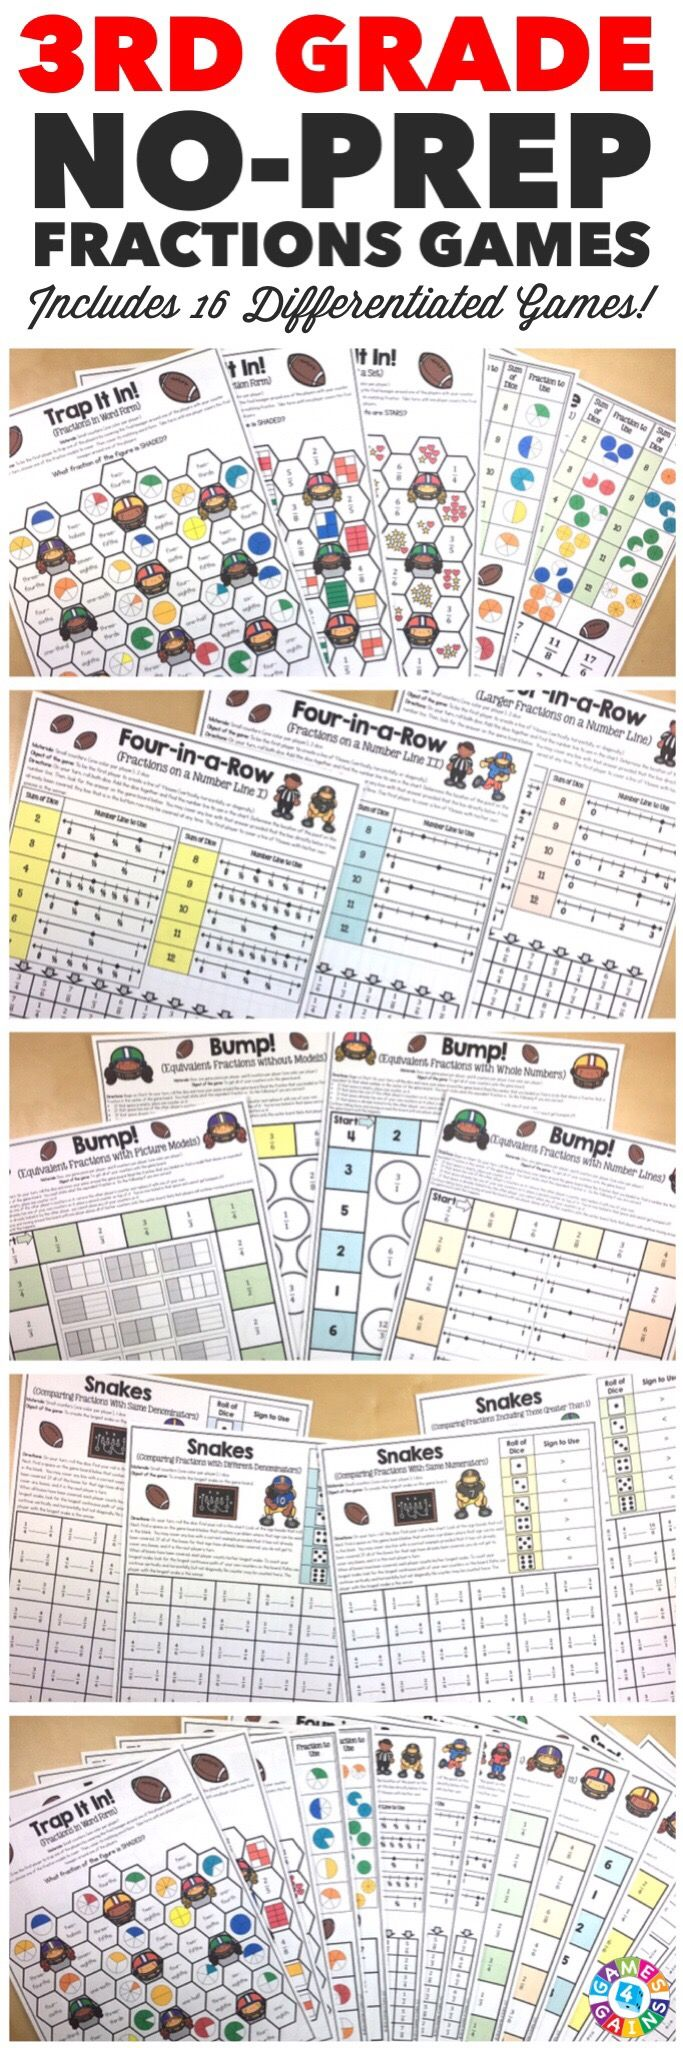 3rd Grade Fractions Games Equivalent Fractions Comparing